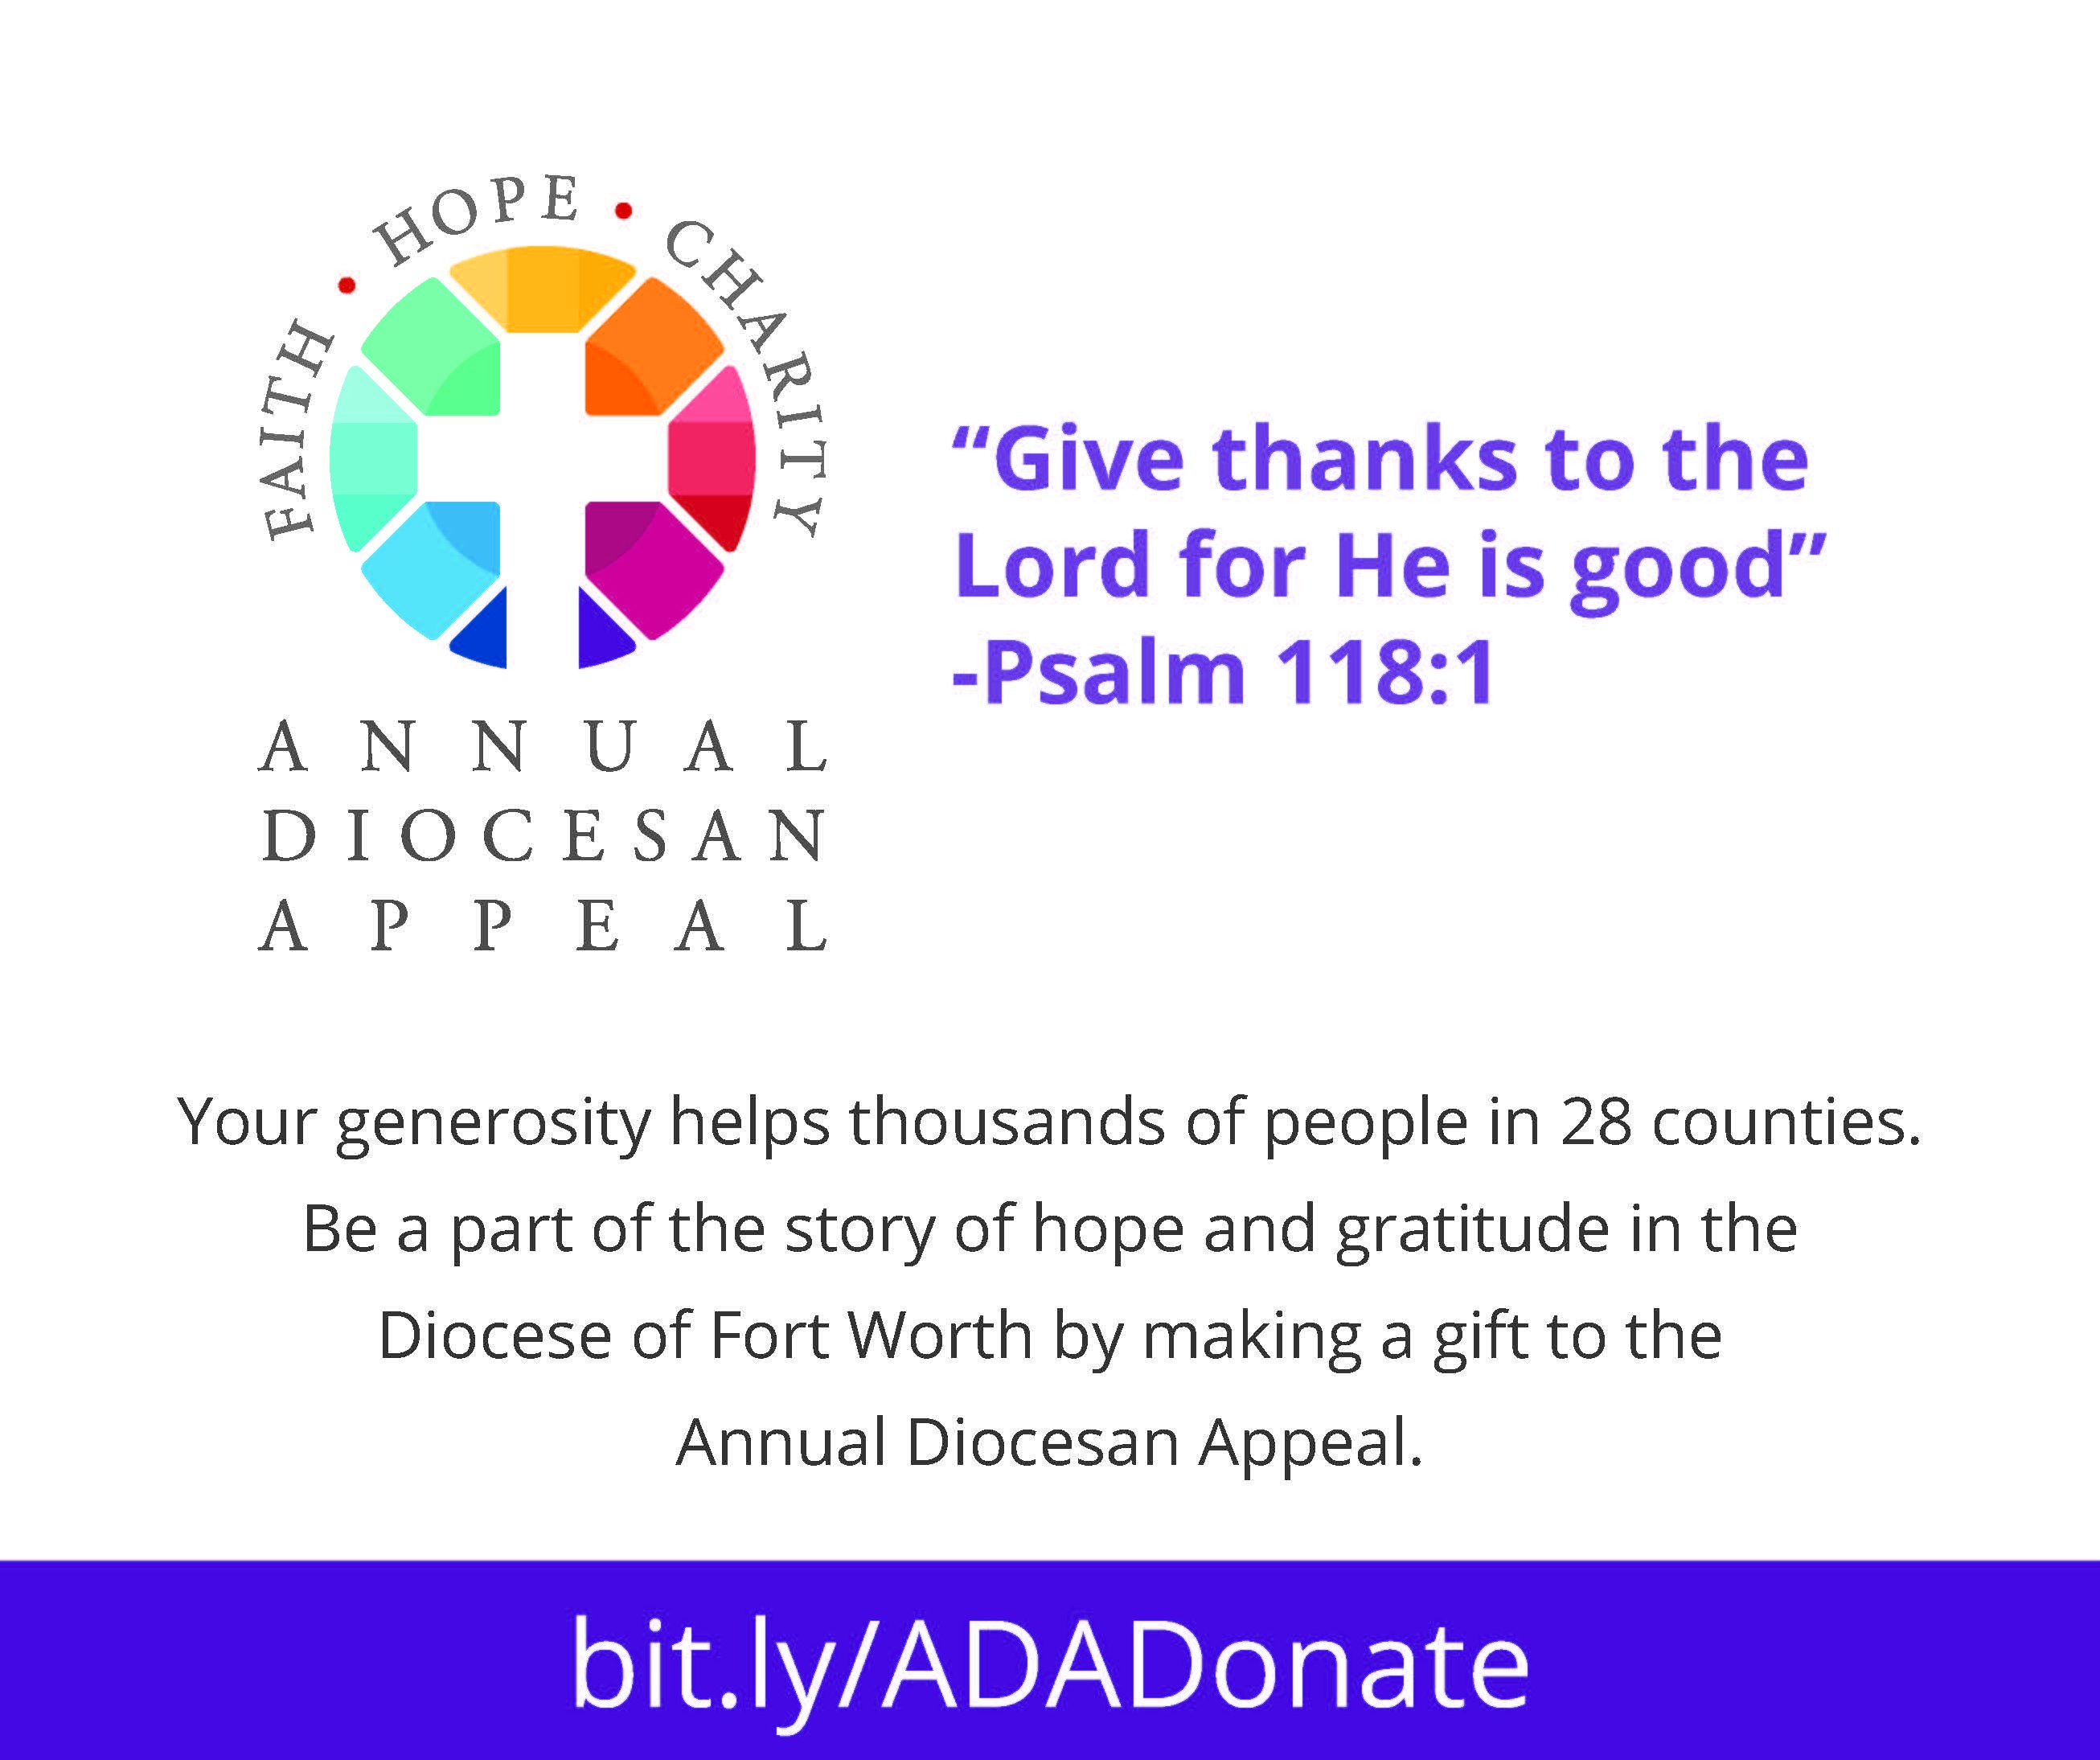 Annual Diocesan Appeal image